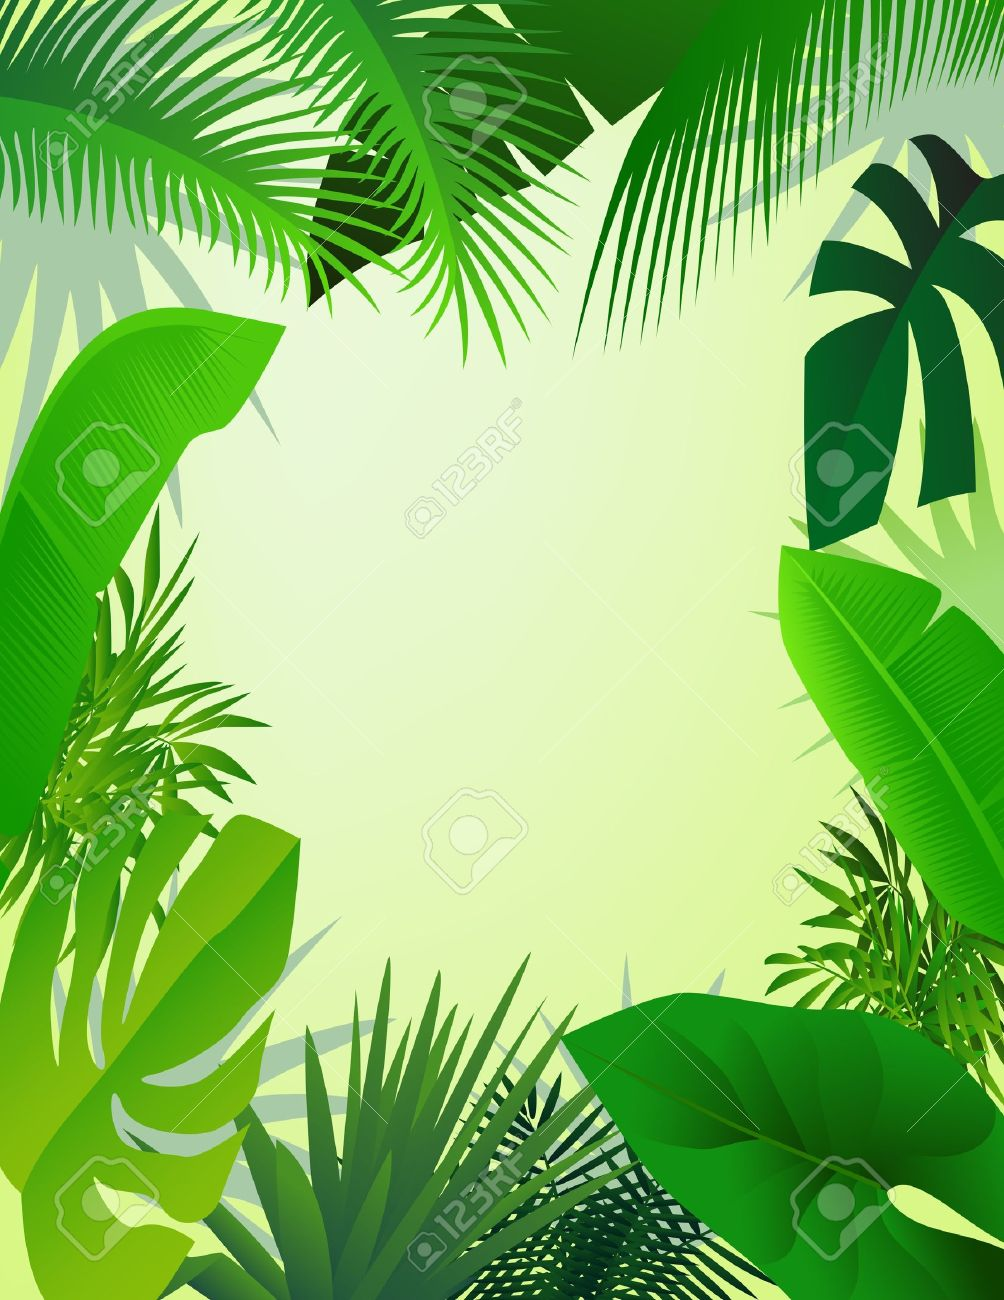 24,247 Jungle Frame Stock Vector Illustration And Royalty Free.